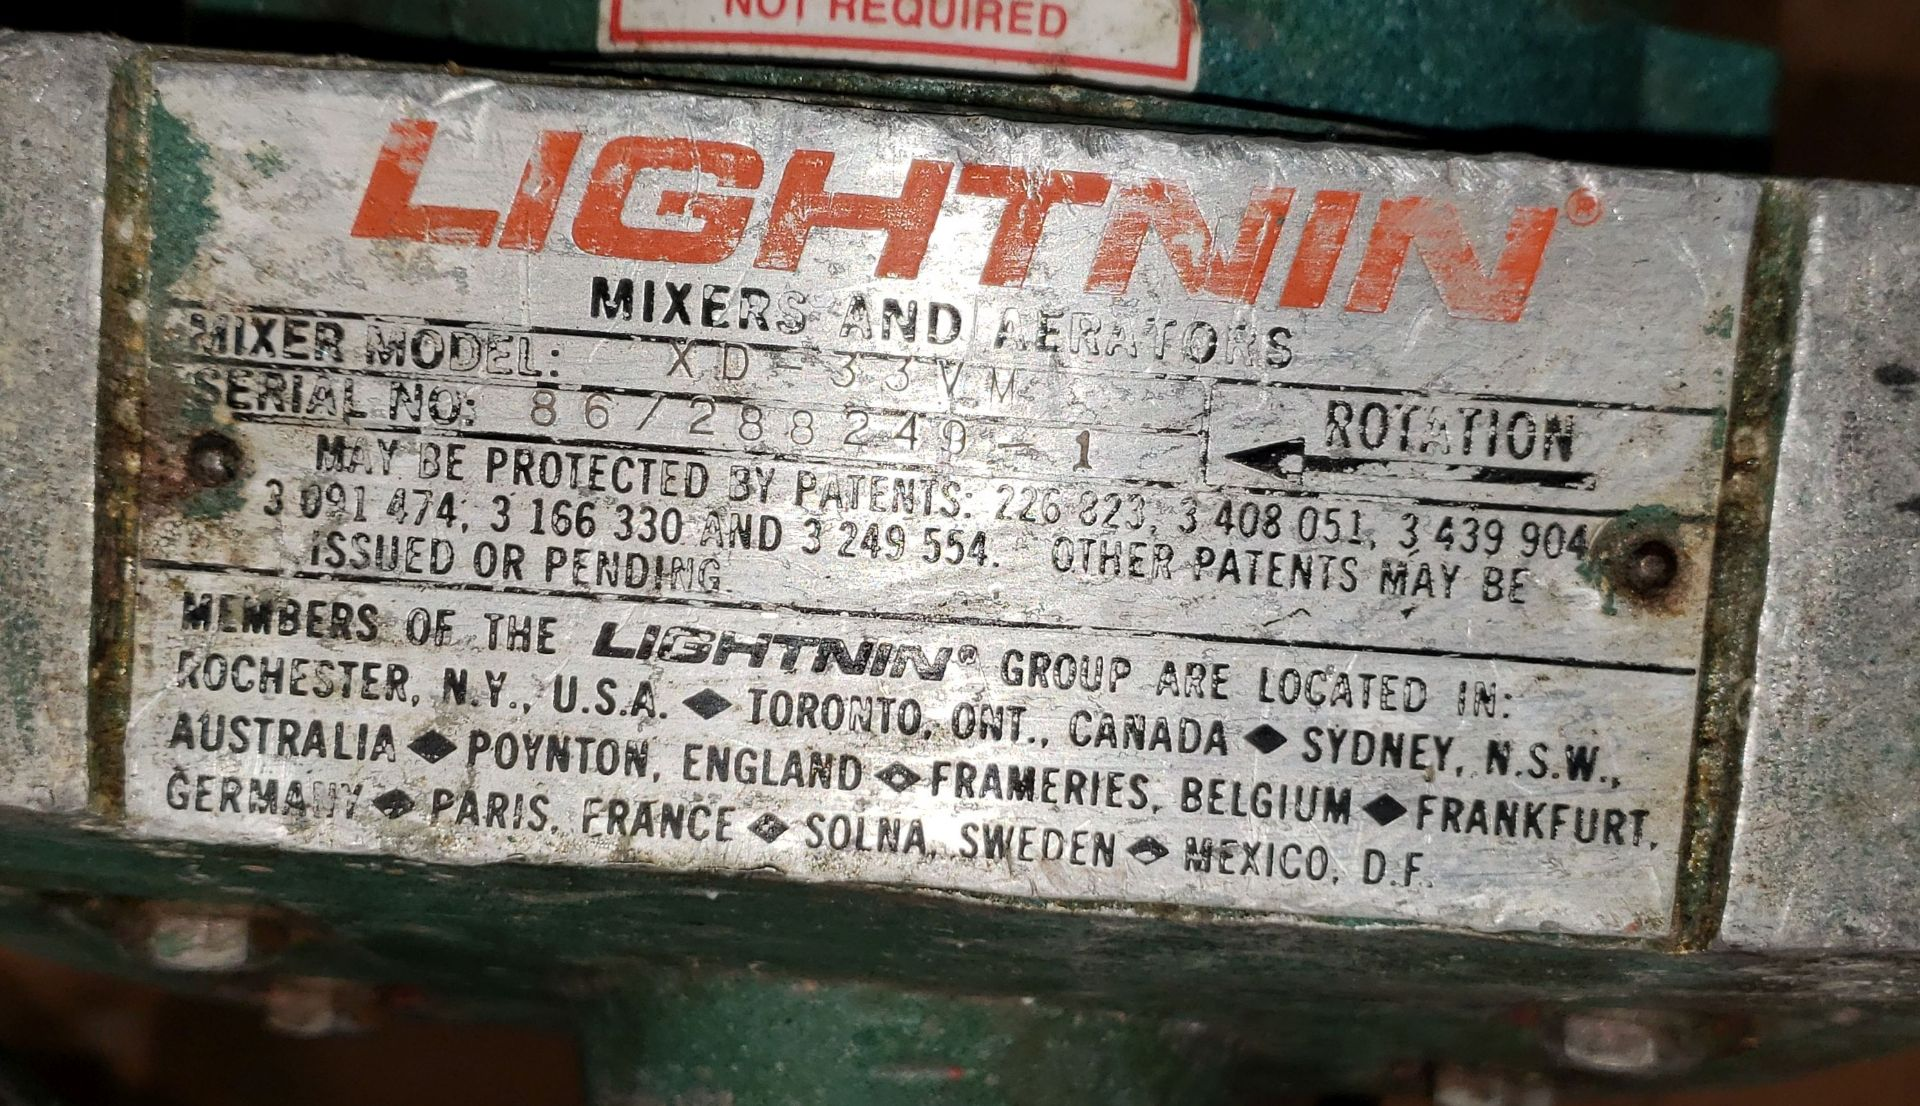 Lot 8 - Lightnin Mixer Model Vari-Mix Variable speed mixer